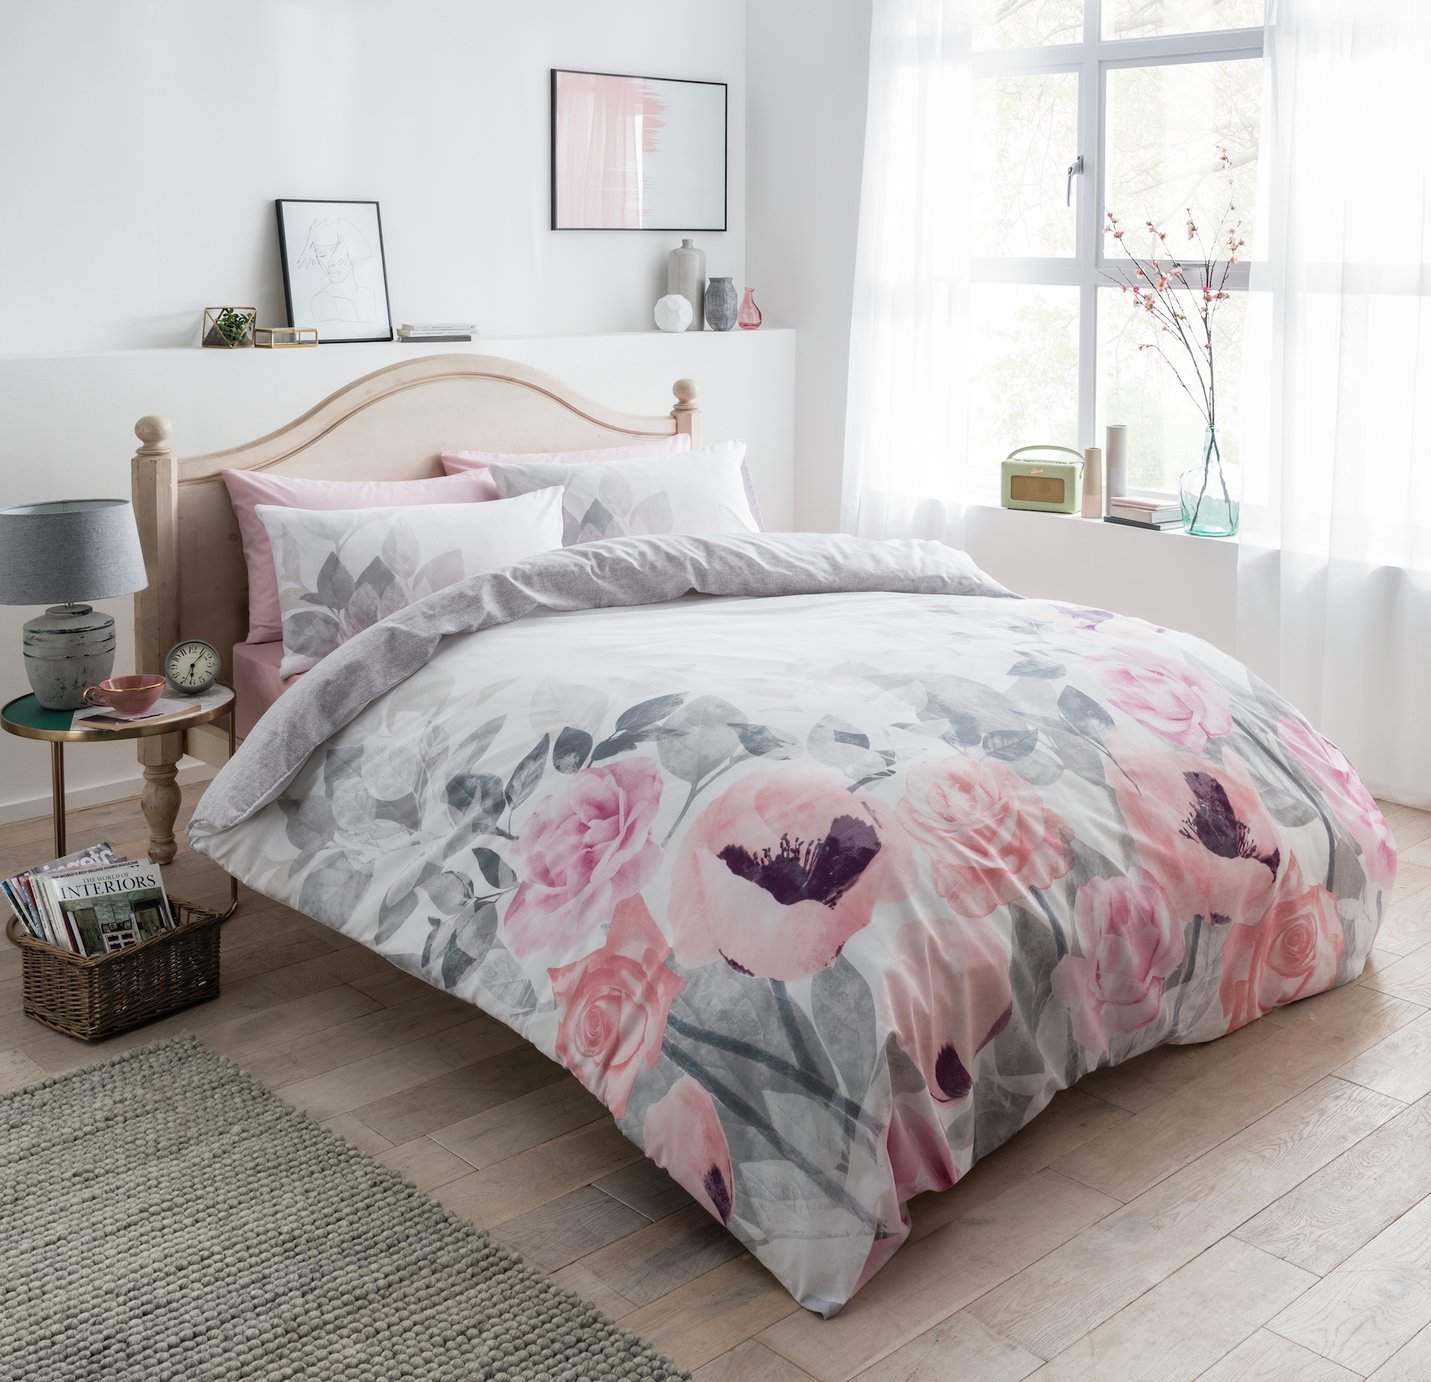 Argos Home Faded Flowers Bedding Set - Kingsize